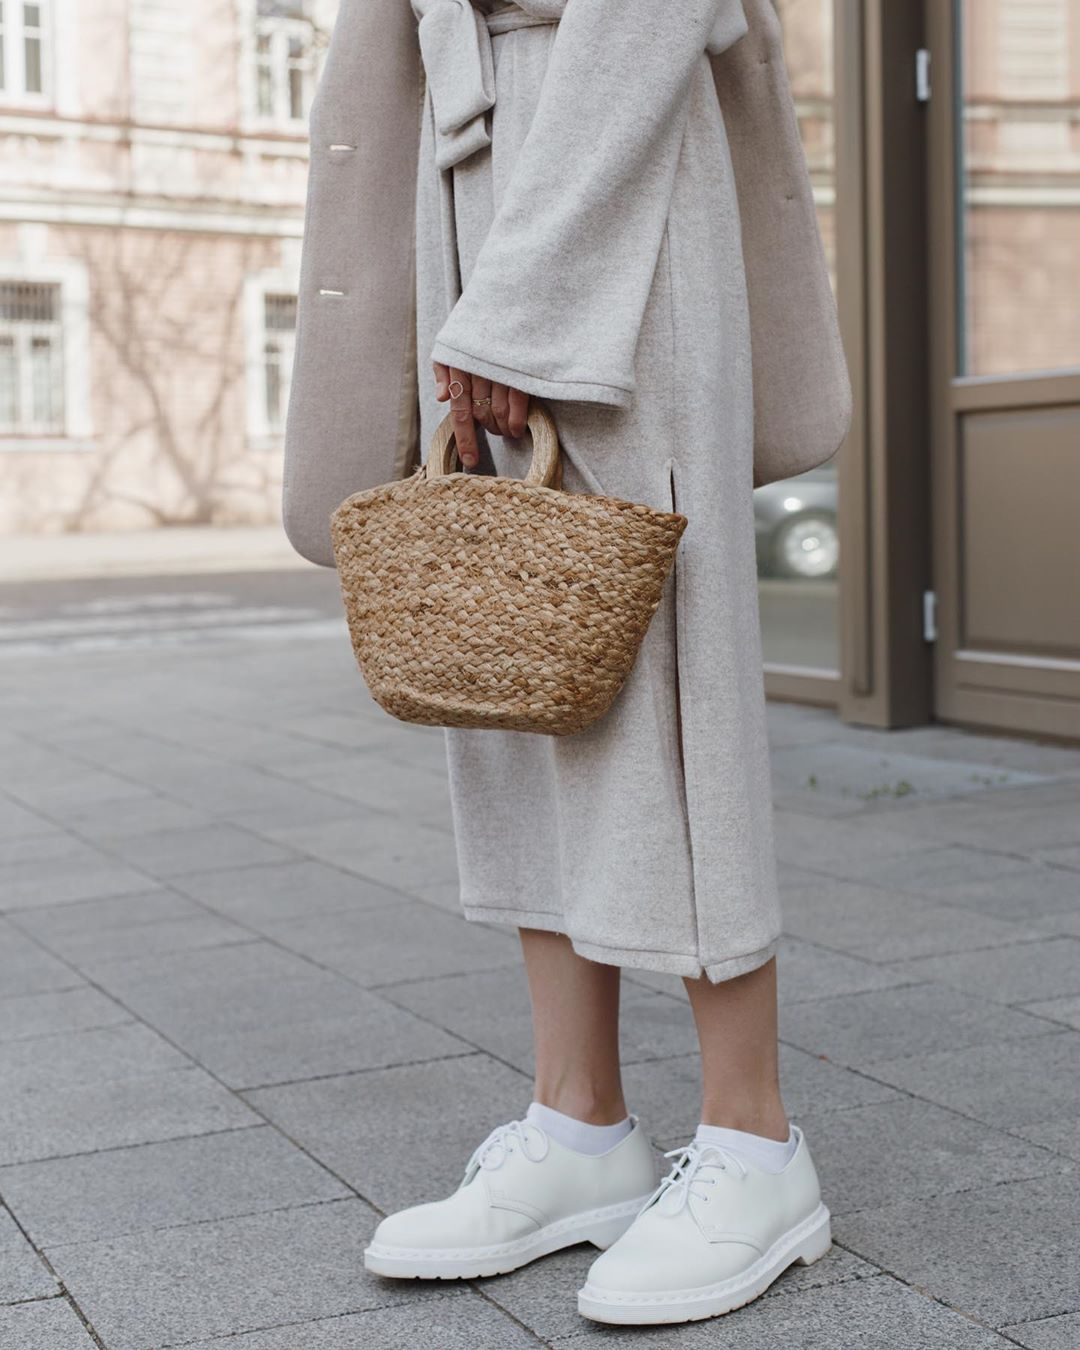 21 Stylish Woven Straw Bags to Buy Right Now